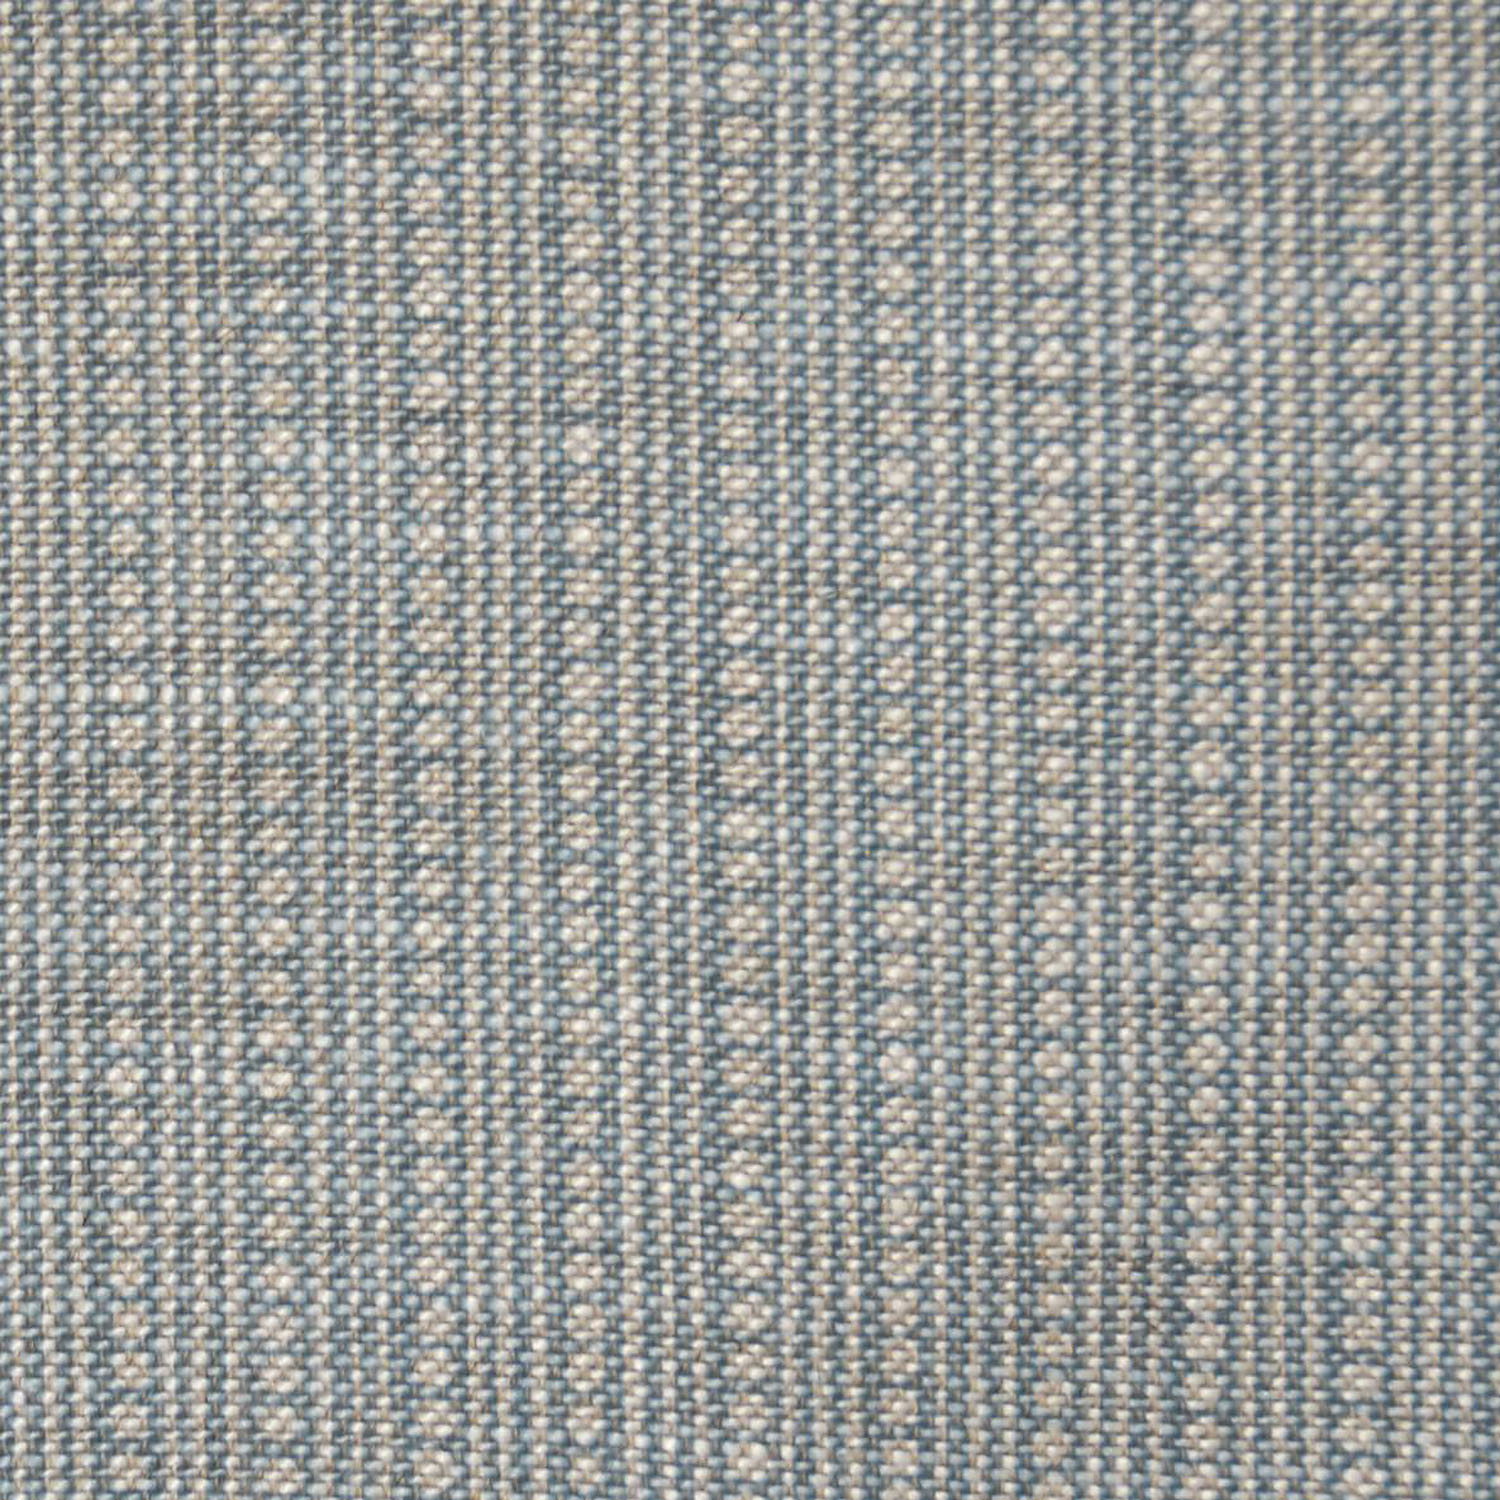 <p><strong>WICKLEWOOD</strong>blue/oatmeal 3900-04<a href=/collection-1/wicklewood-blue-oatmeal-3900-04>More →</a></p>